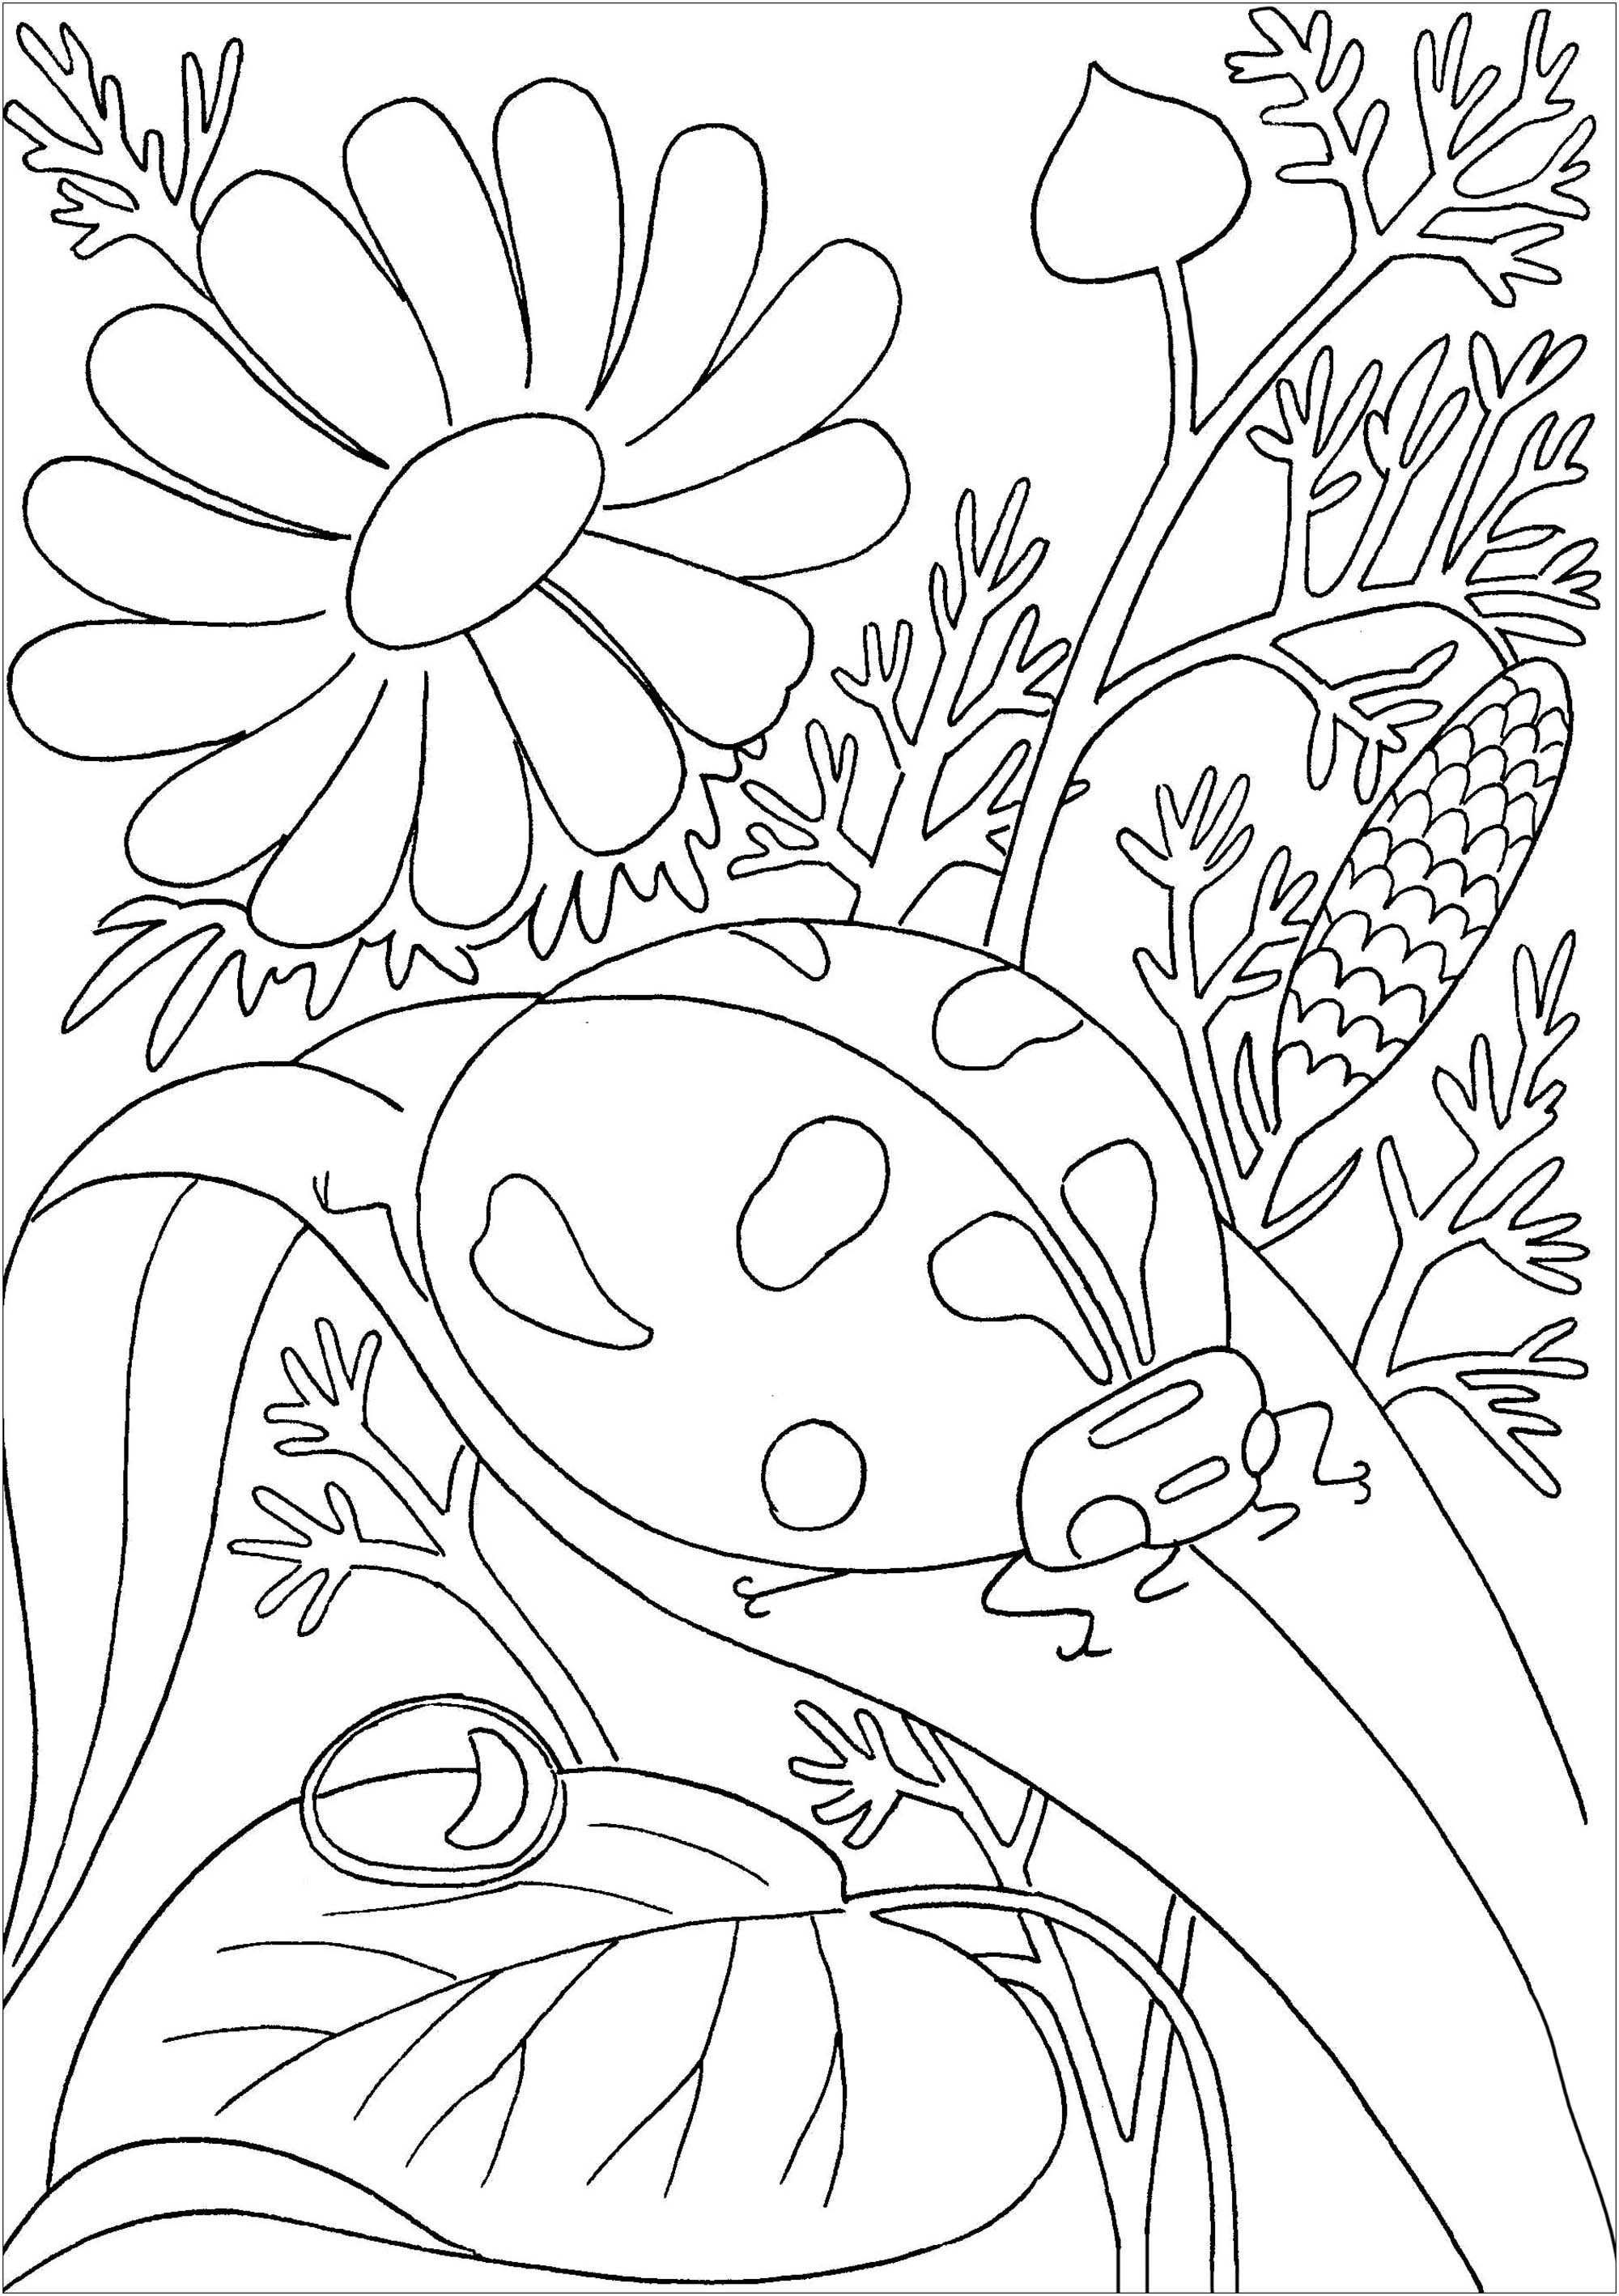 colouring ladybird ladybug on a leave butterflies insects adult coloring colouring ladybird